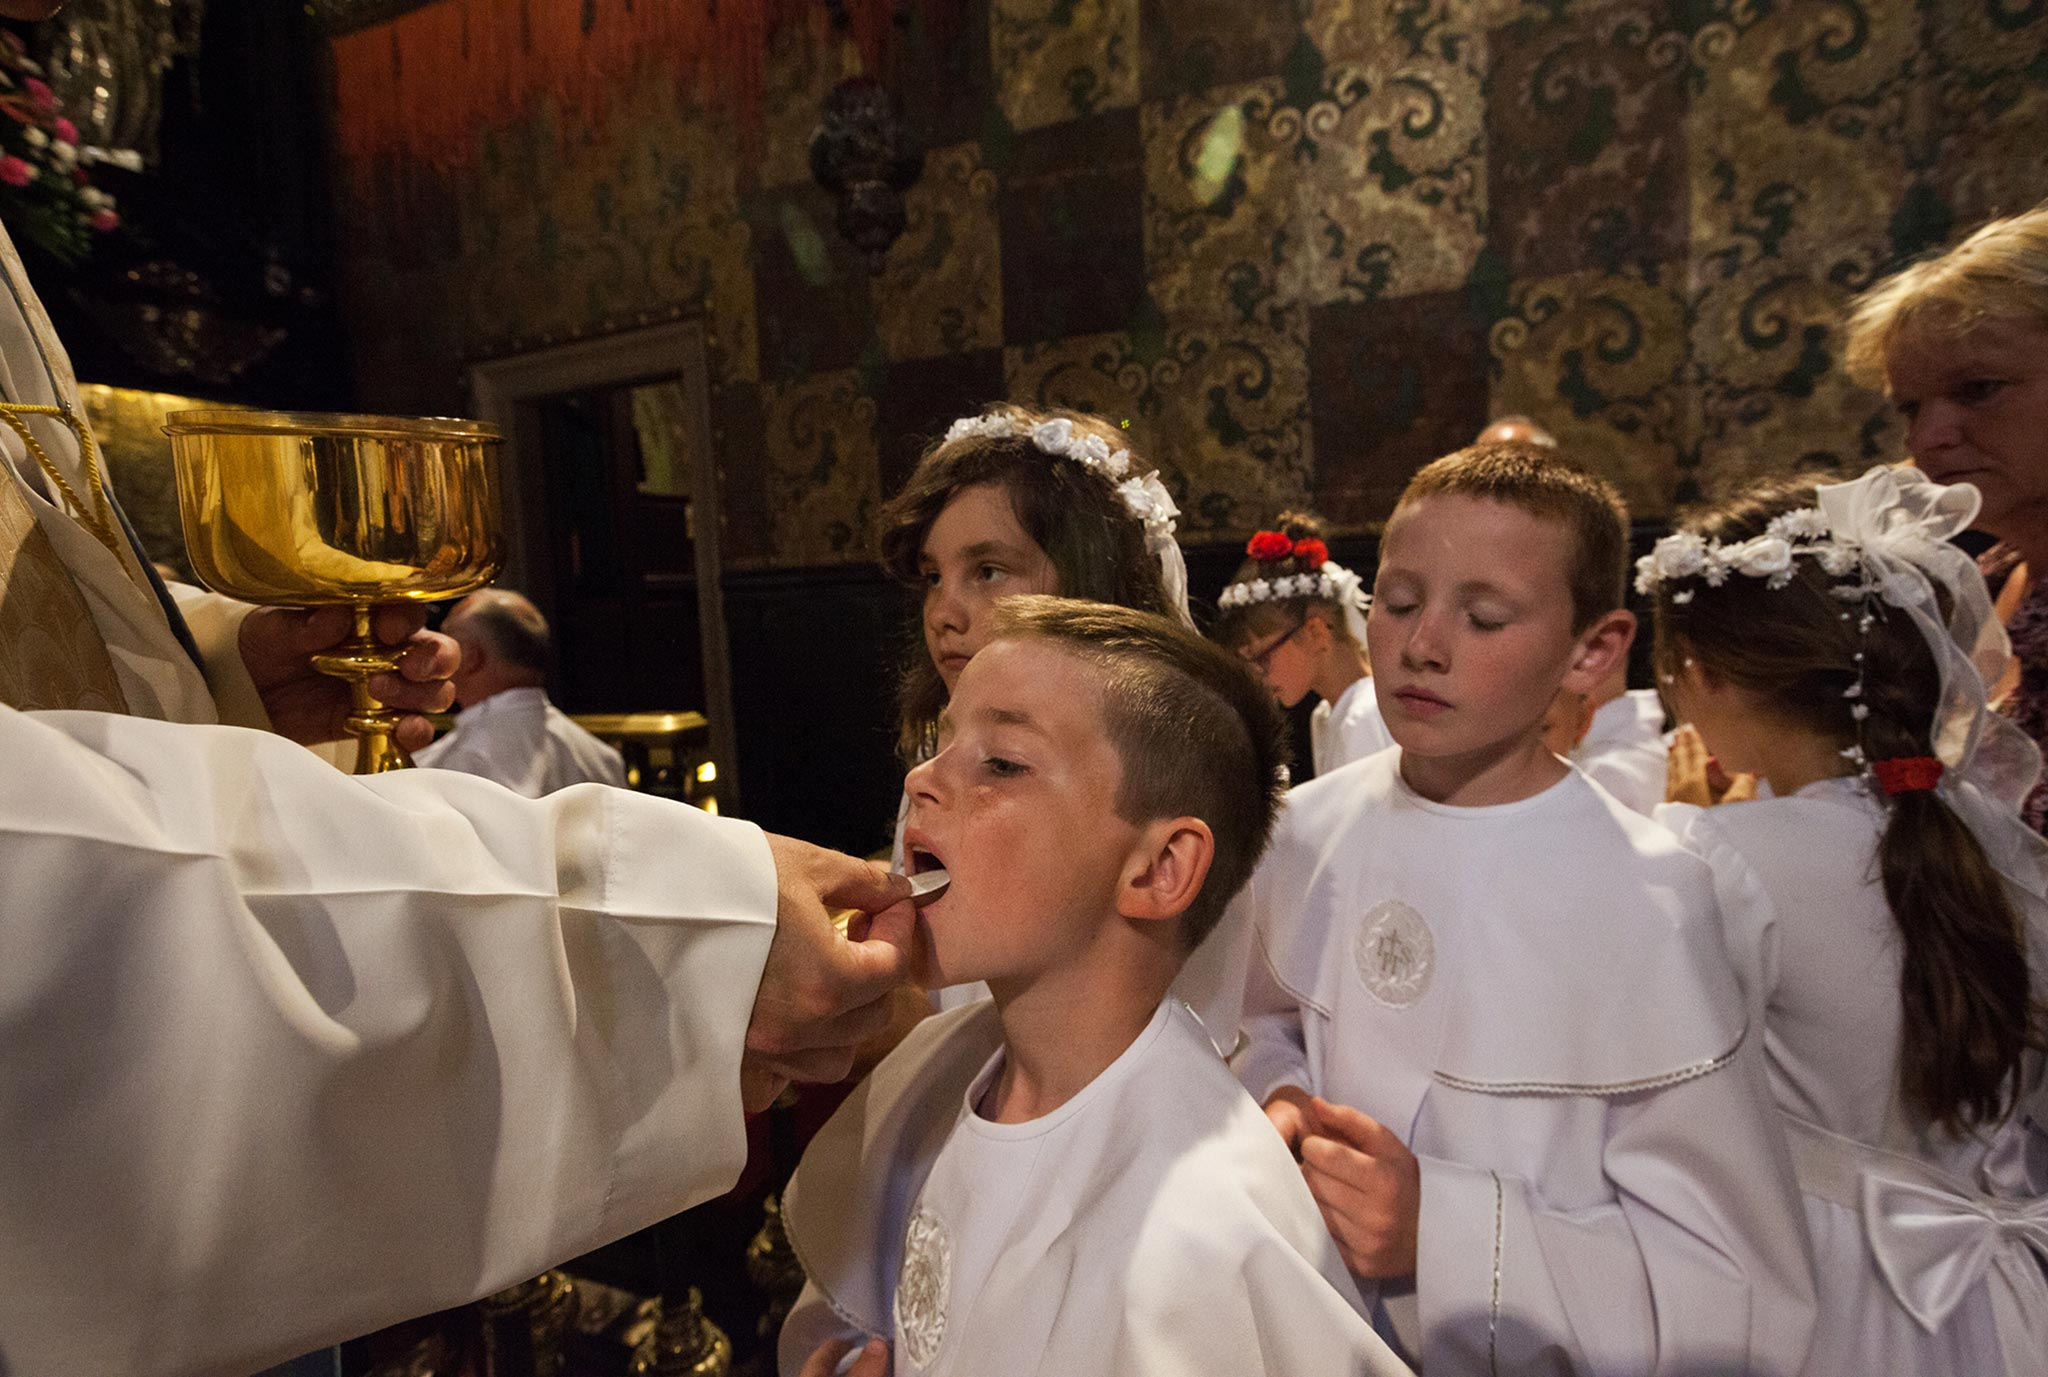 A boy receives Communion at the Jasna Góra Monastery, in Częstochowa, Poland. The Black Madonna—a revered painting of a dark-skinned Virgin Mary and Child Jesus, said to be the work of St. Luke—is housed in this sanctuary.